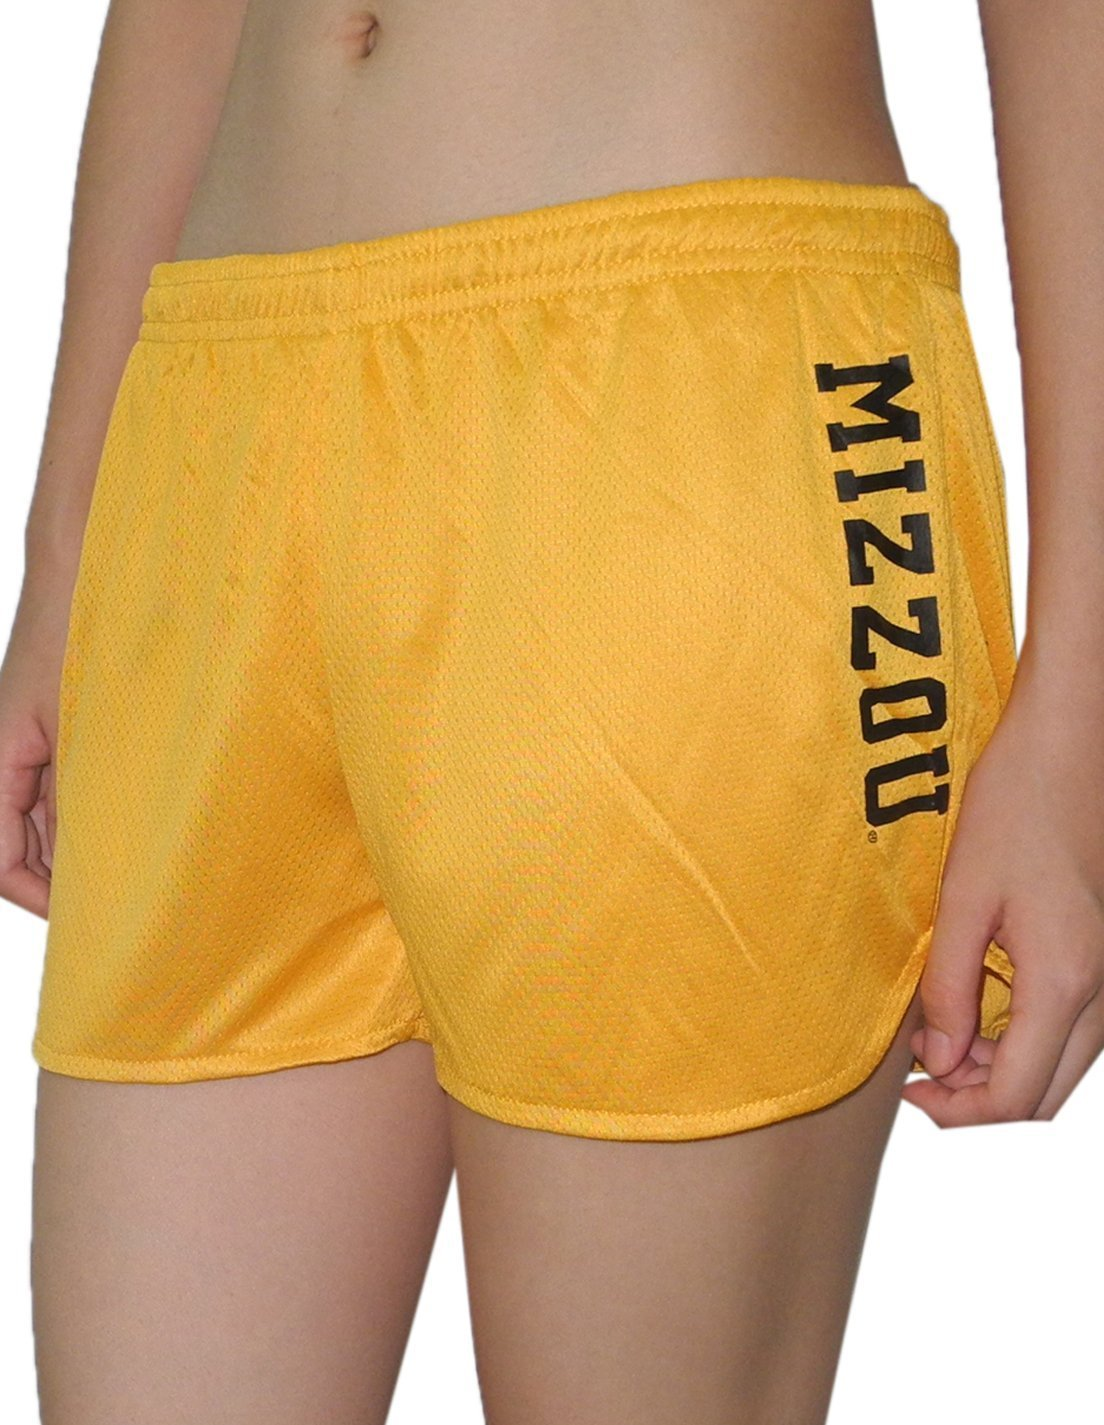 Shop for Women's shorts on sale at failvideo.ml Enjoy free shipping and returns with NikePlus.